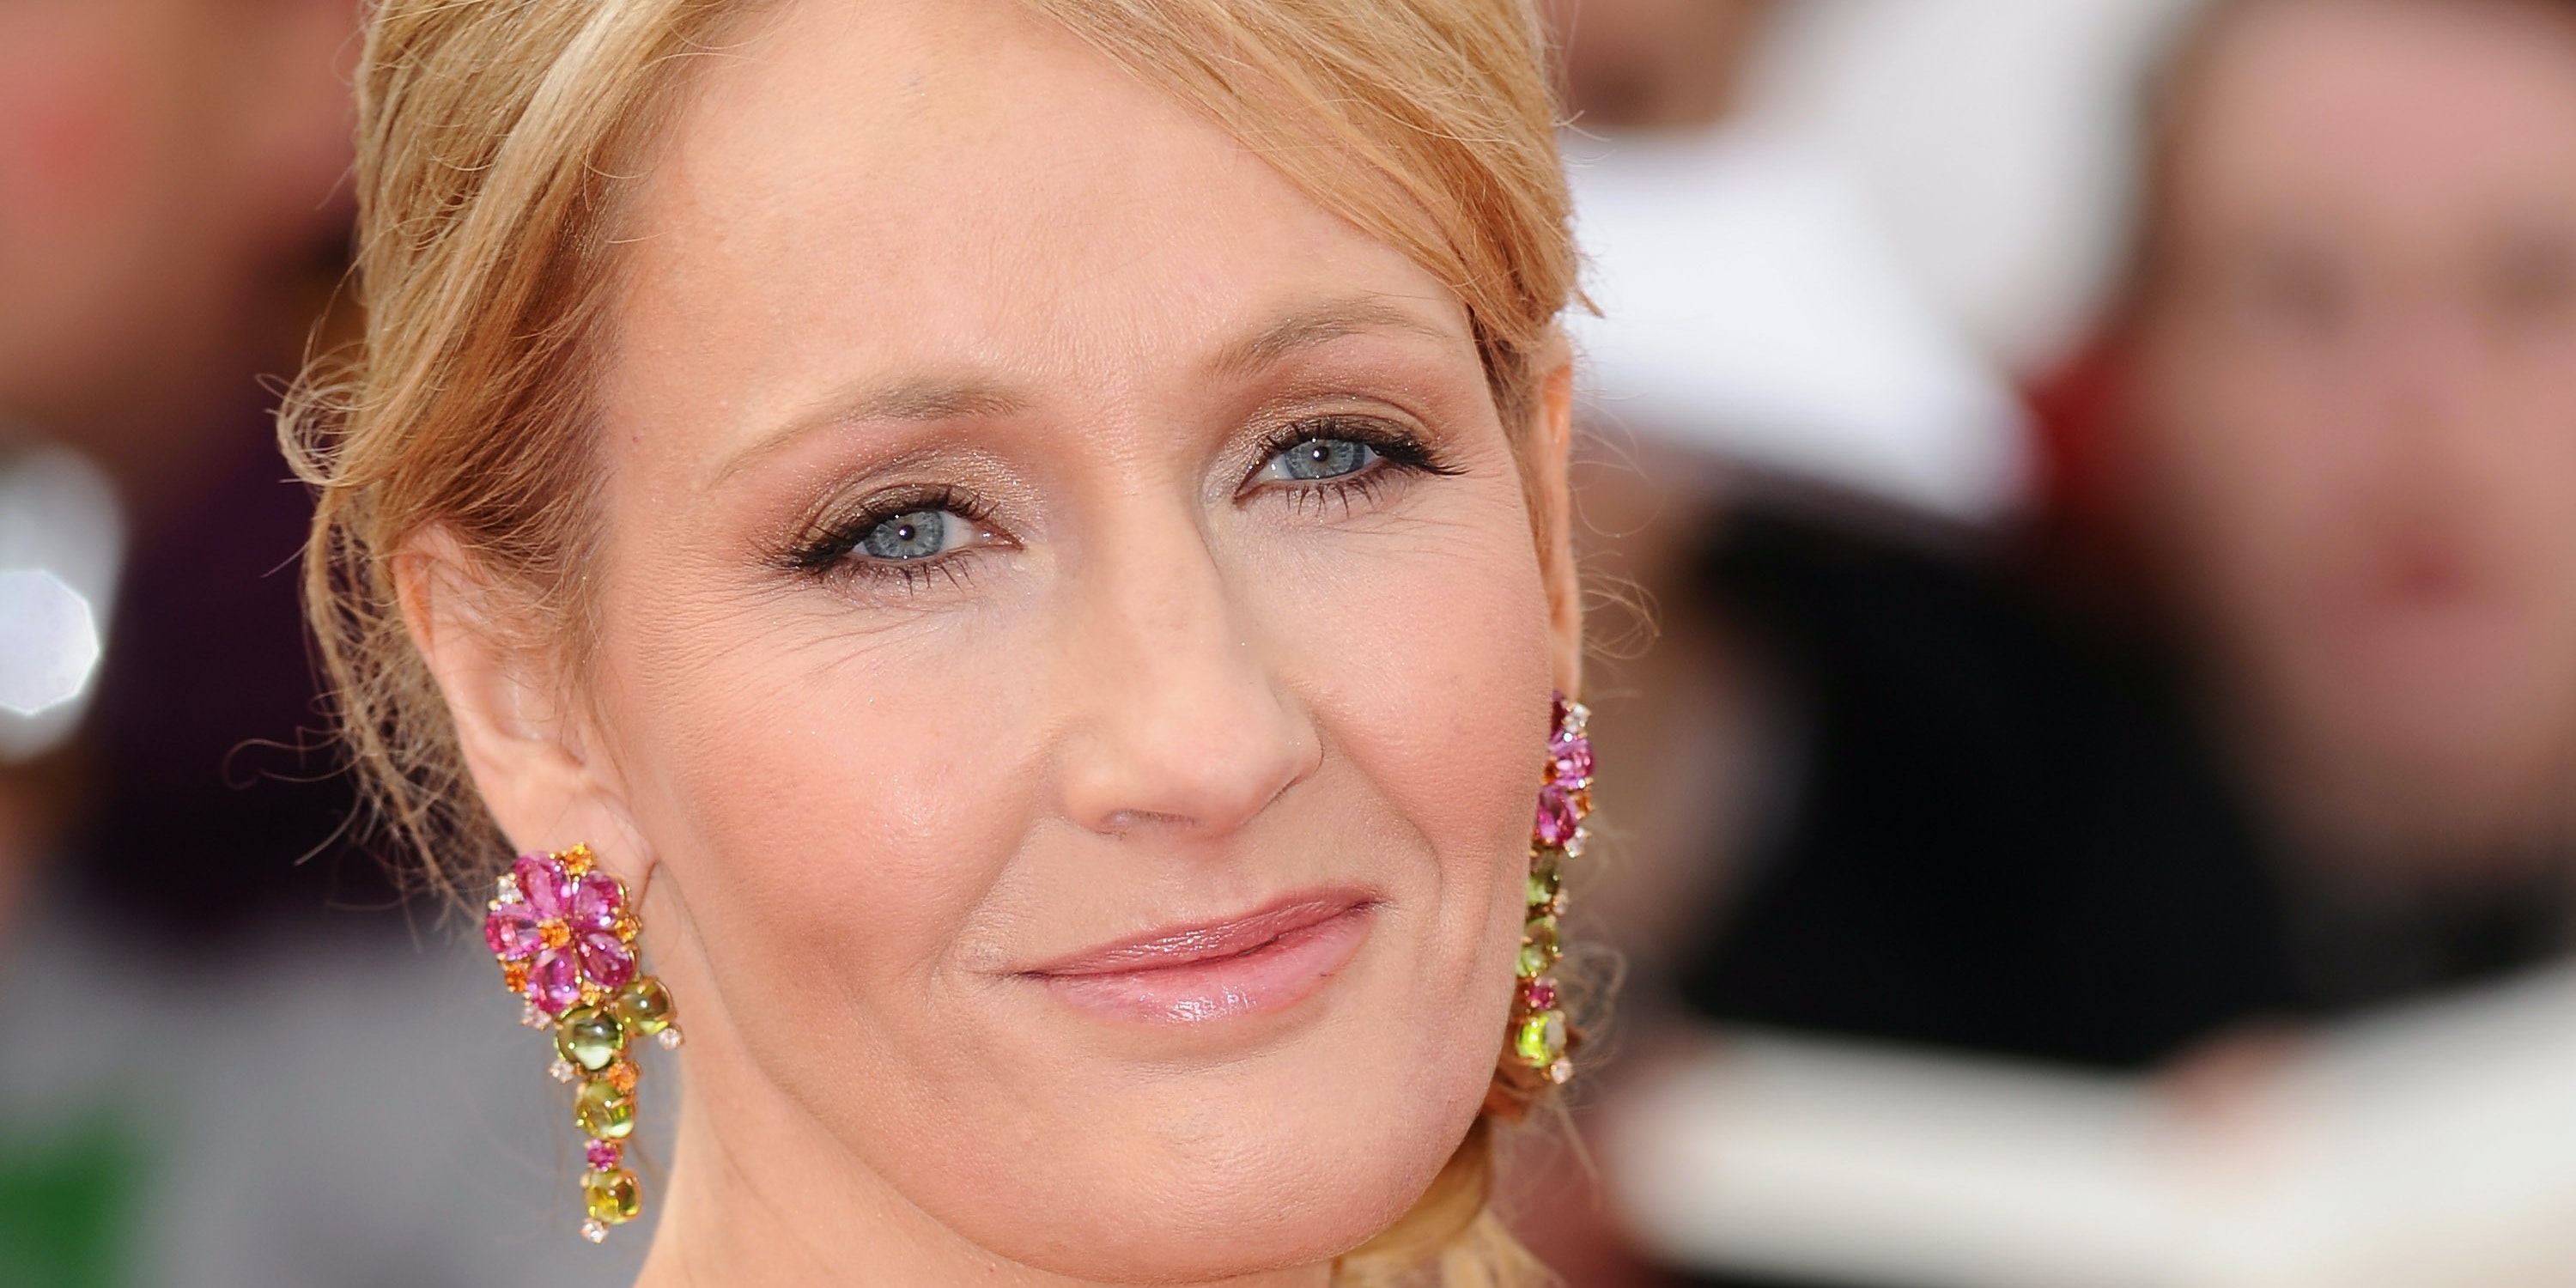 How J.K. Rowling's Chamillionaire Pun Compares to Her Sassy Twitter Past